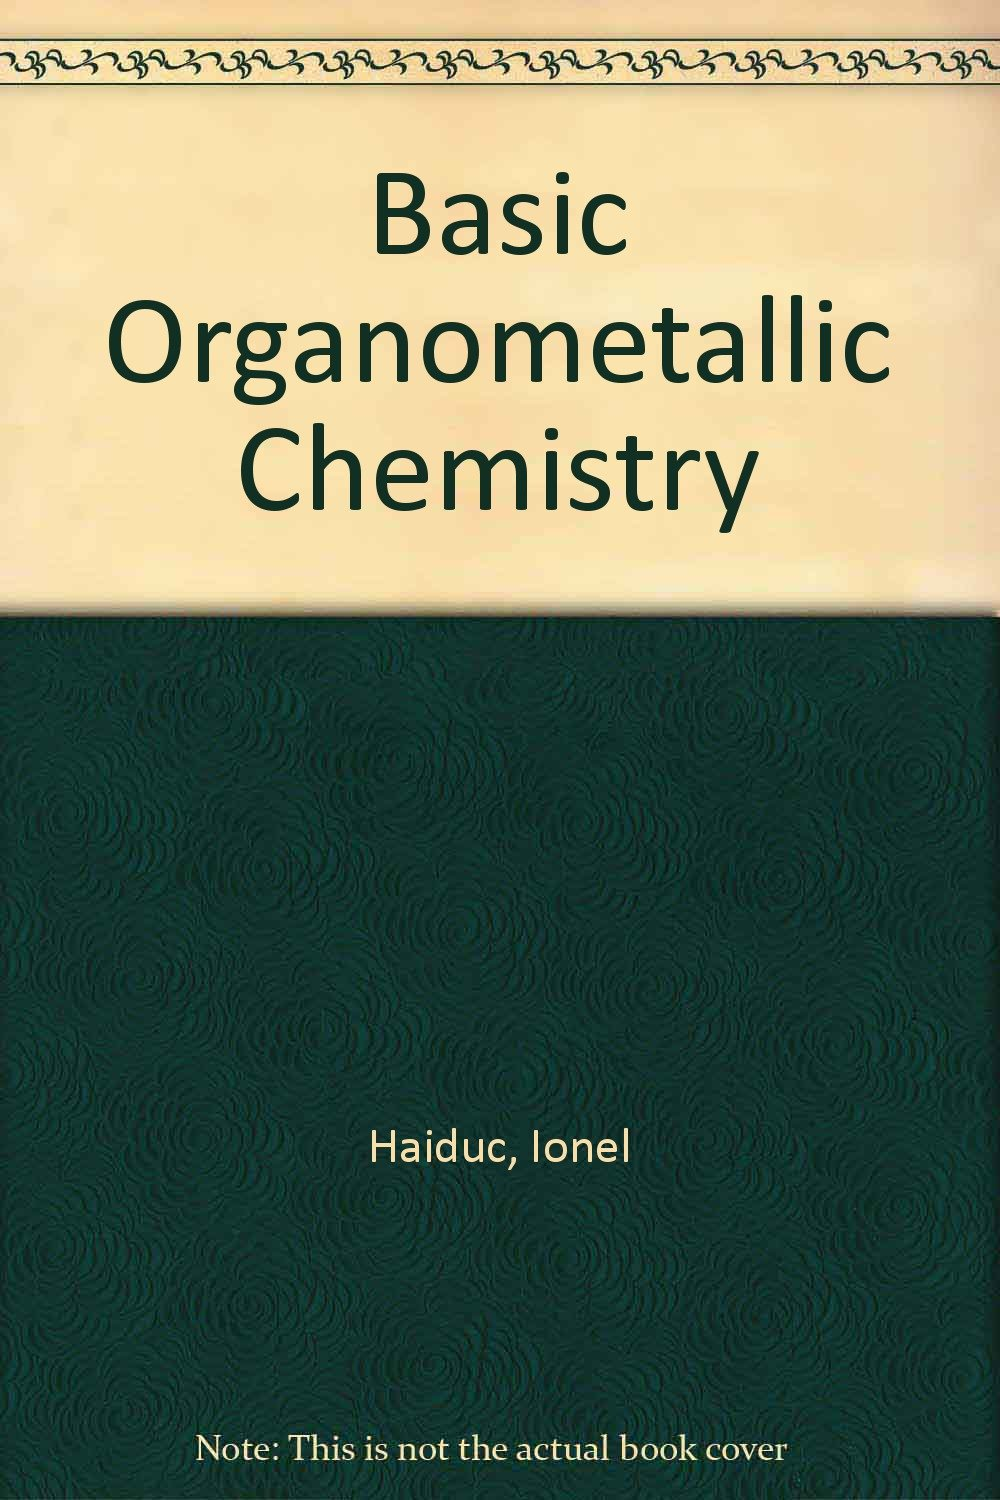 Basic organometallic chemistry [electronic resource] : Containing comprehensive bibliography